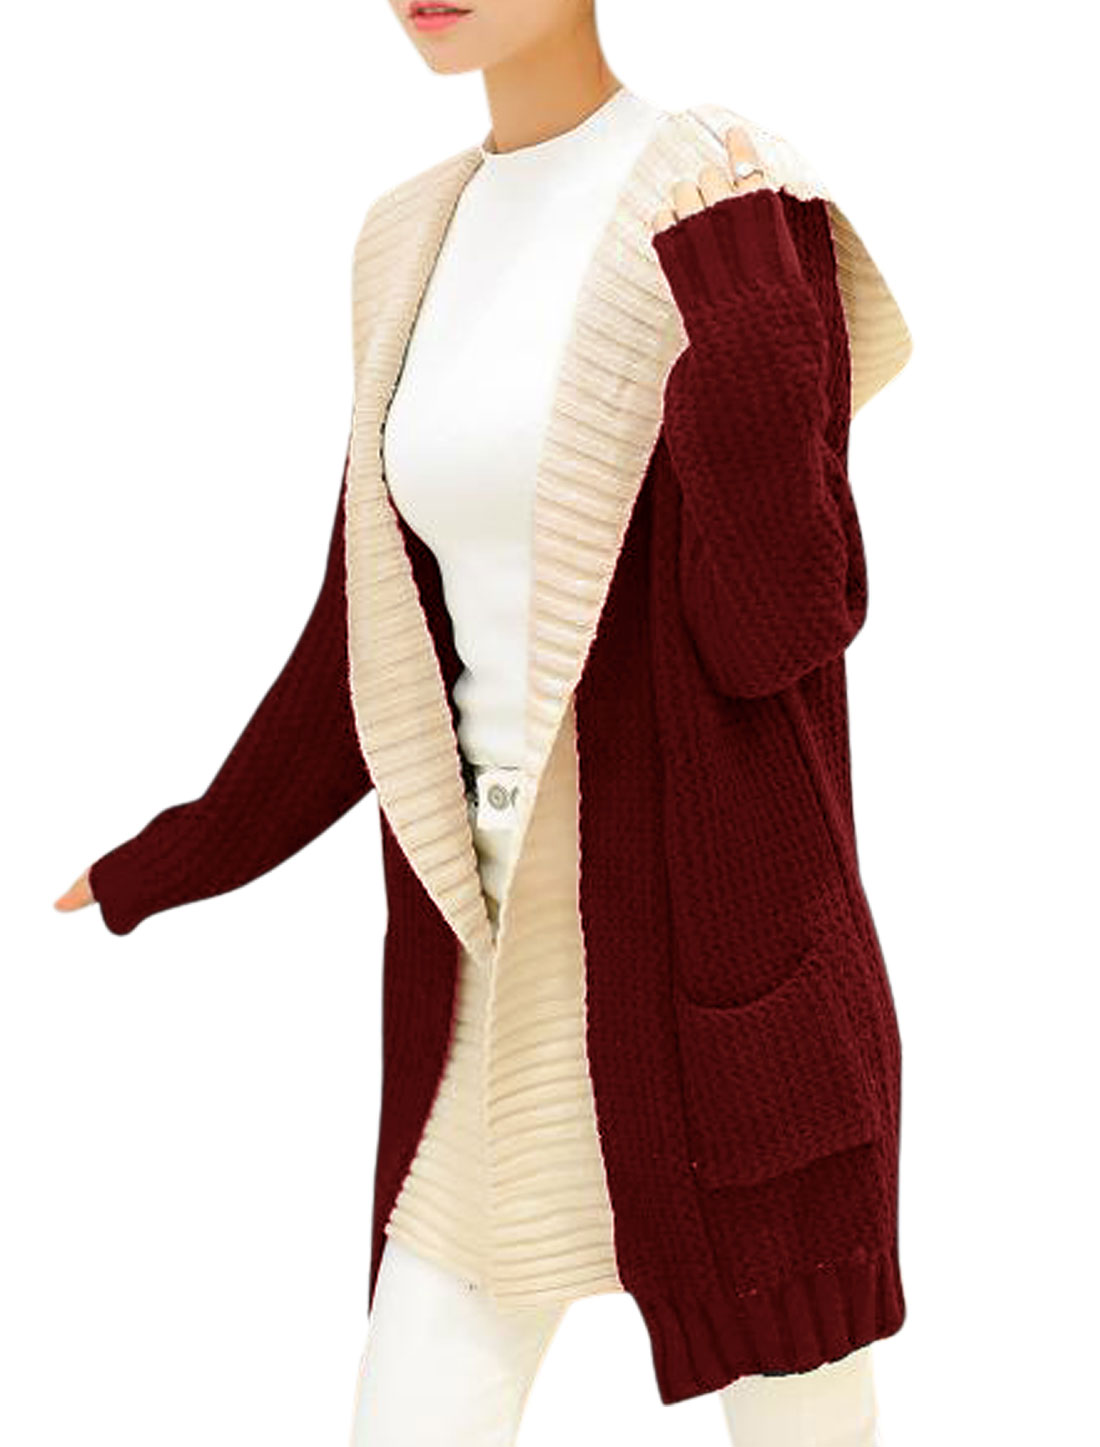 Women Burgundy Hooded Layered Long Cardigan Sweater XS